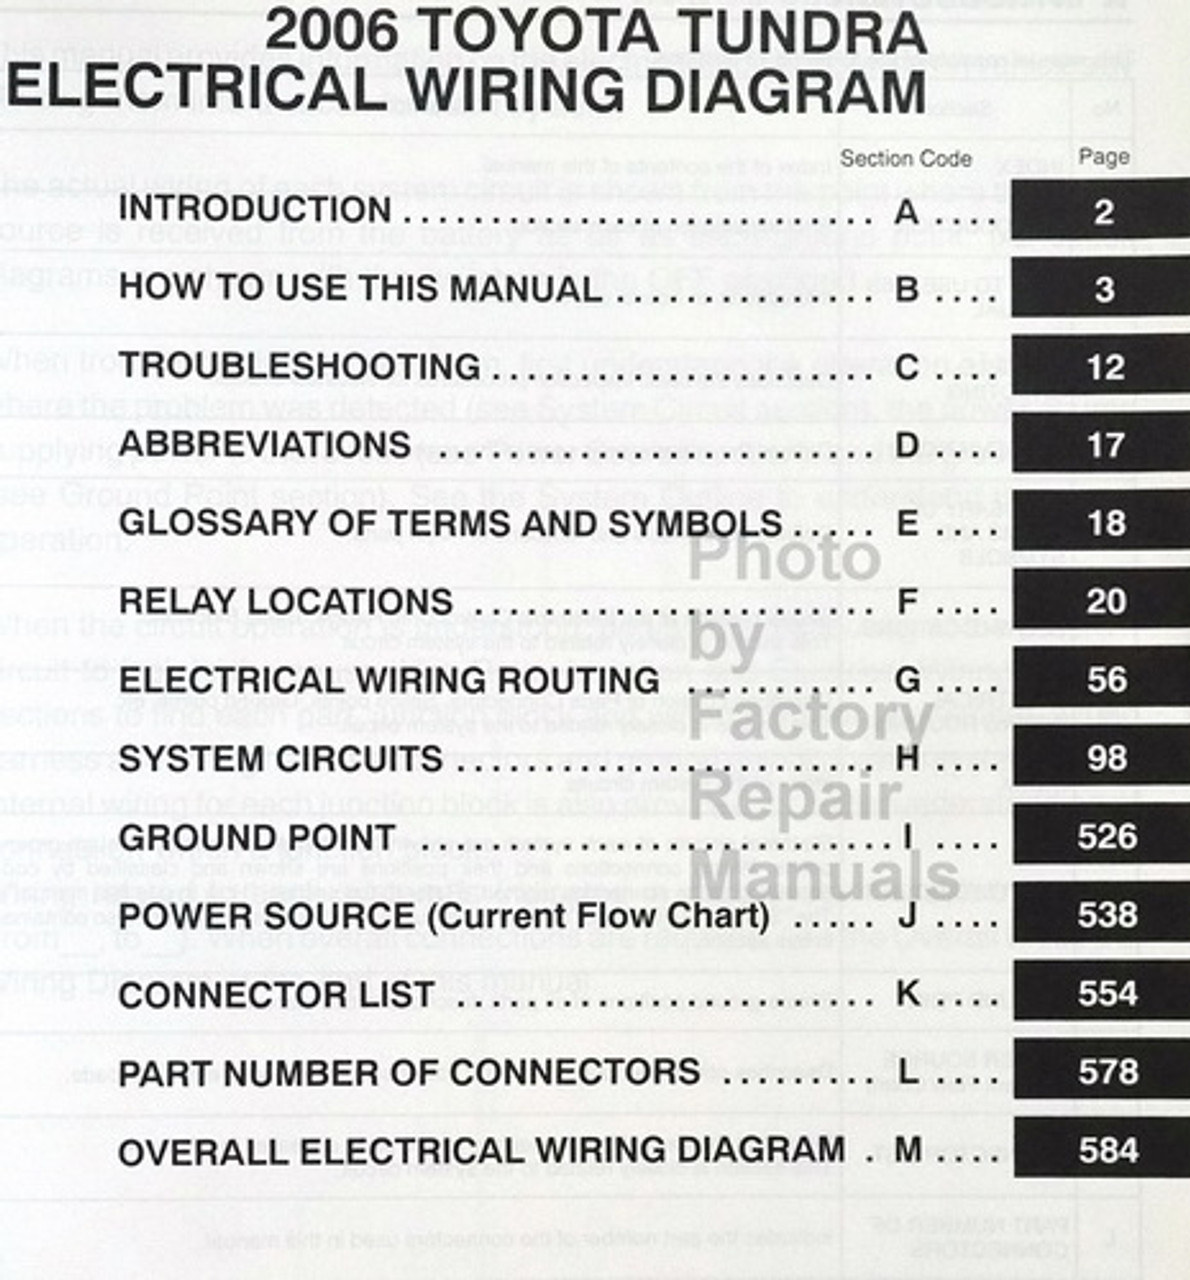 2006 toyota tundra electrical wiring diagrams original factory manual -  factory repair manuals  factory repair manuals